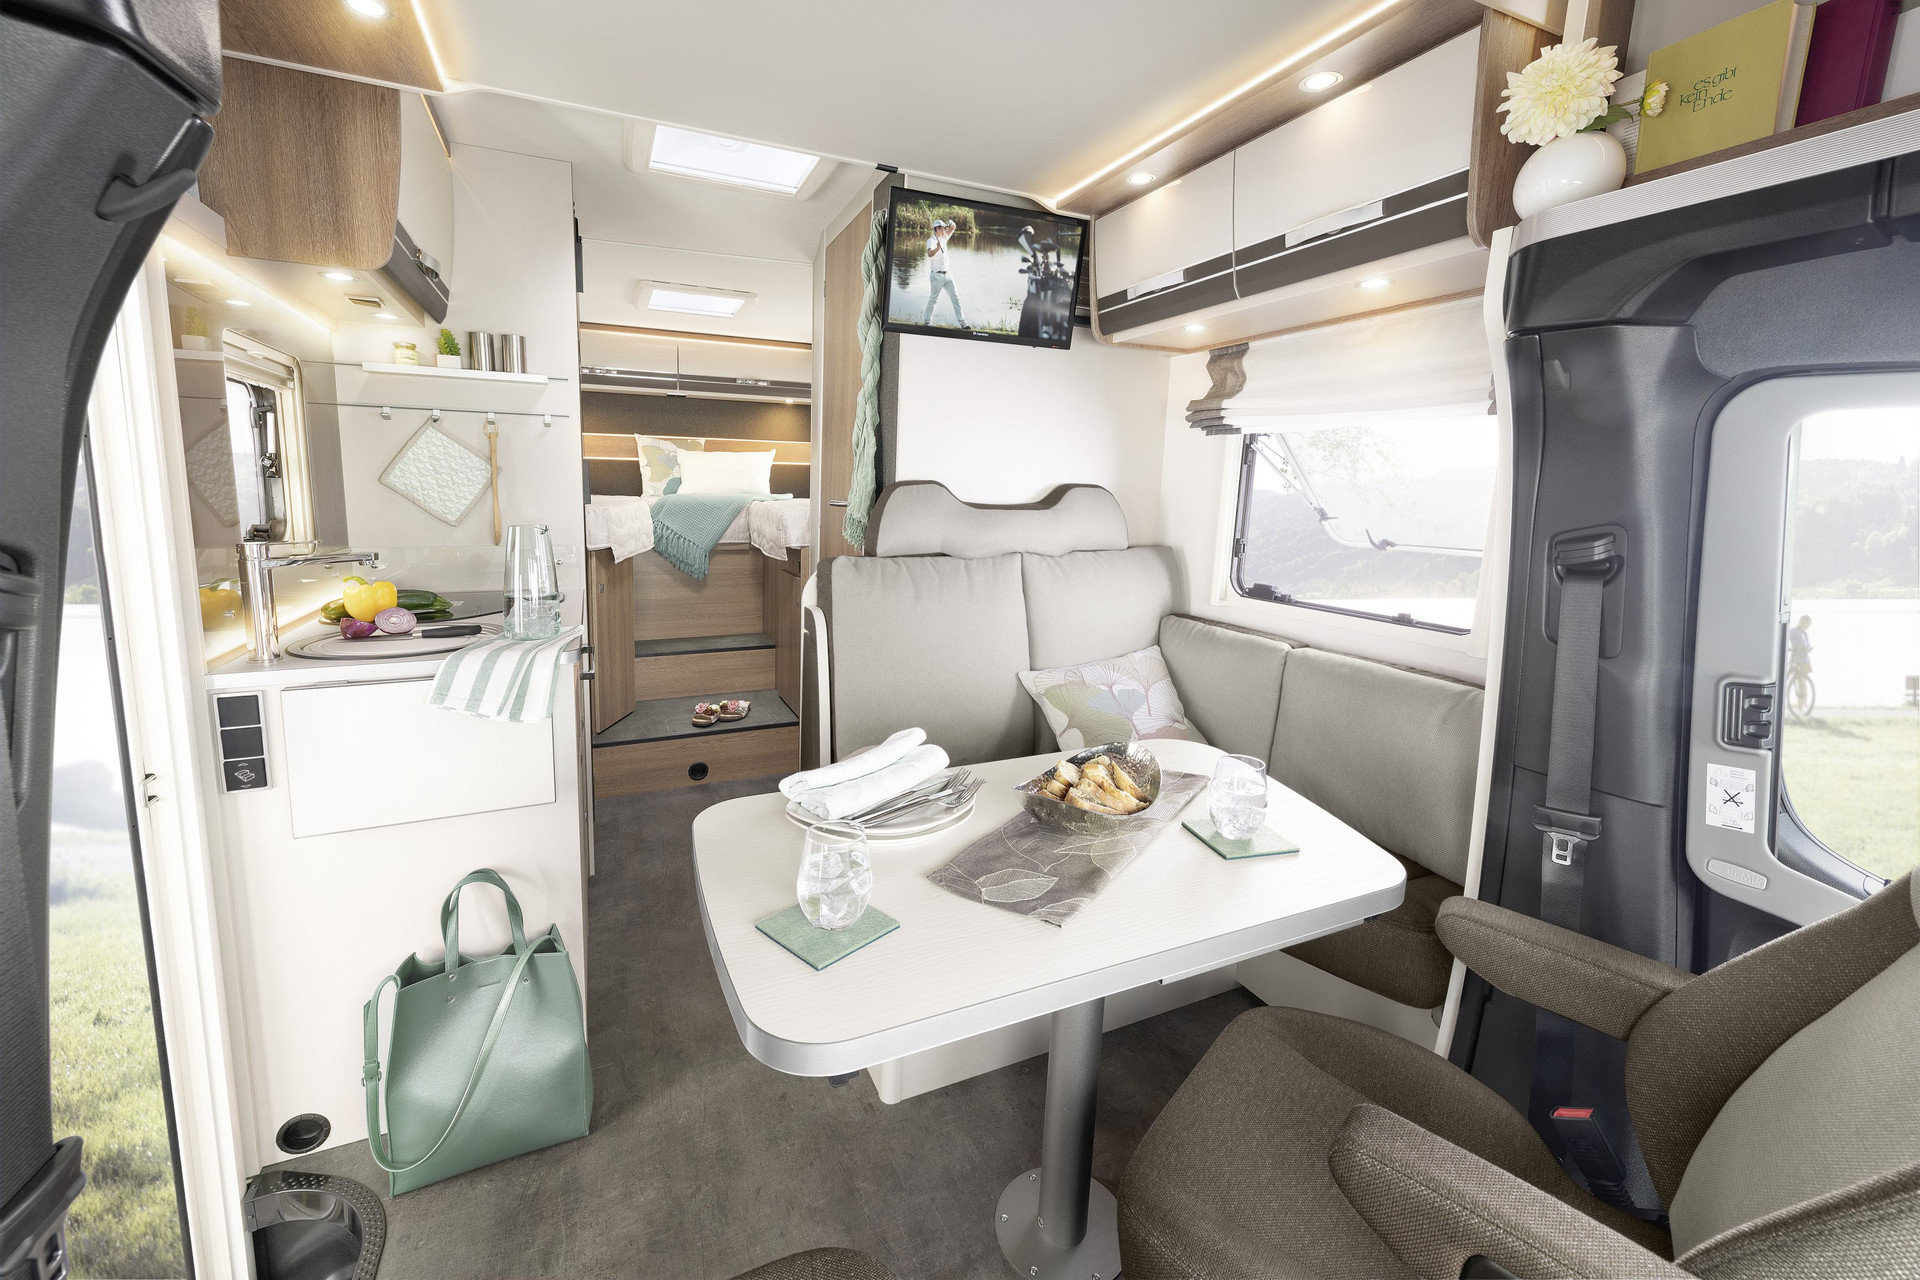 Comfortable, modern, spacious – the popular single-bed layout has a lot to offer due to its compactness, including an optional pull-down bed for an additional berth • T 6613 | La Rocca